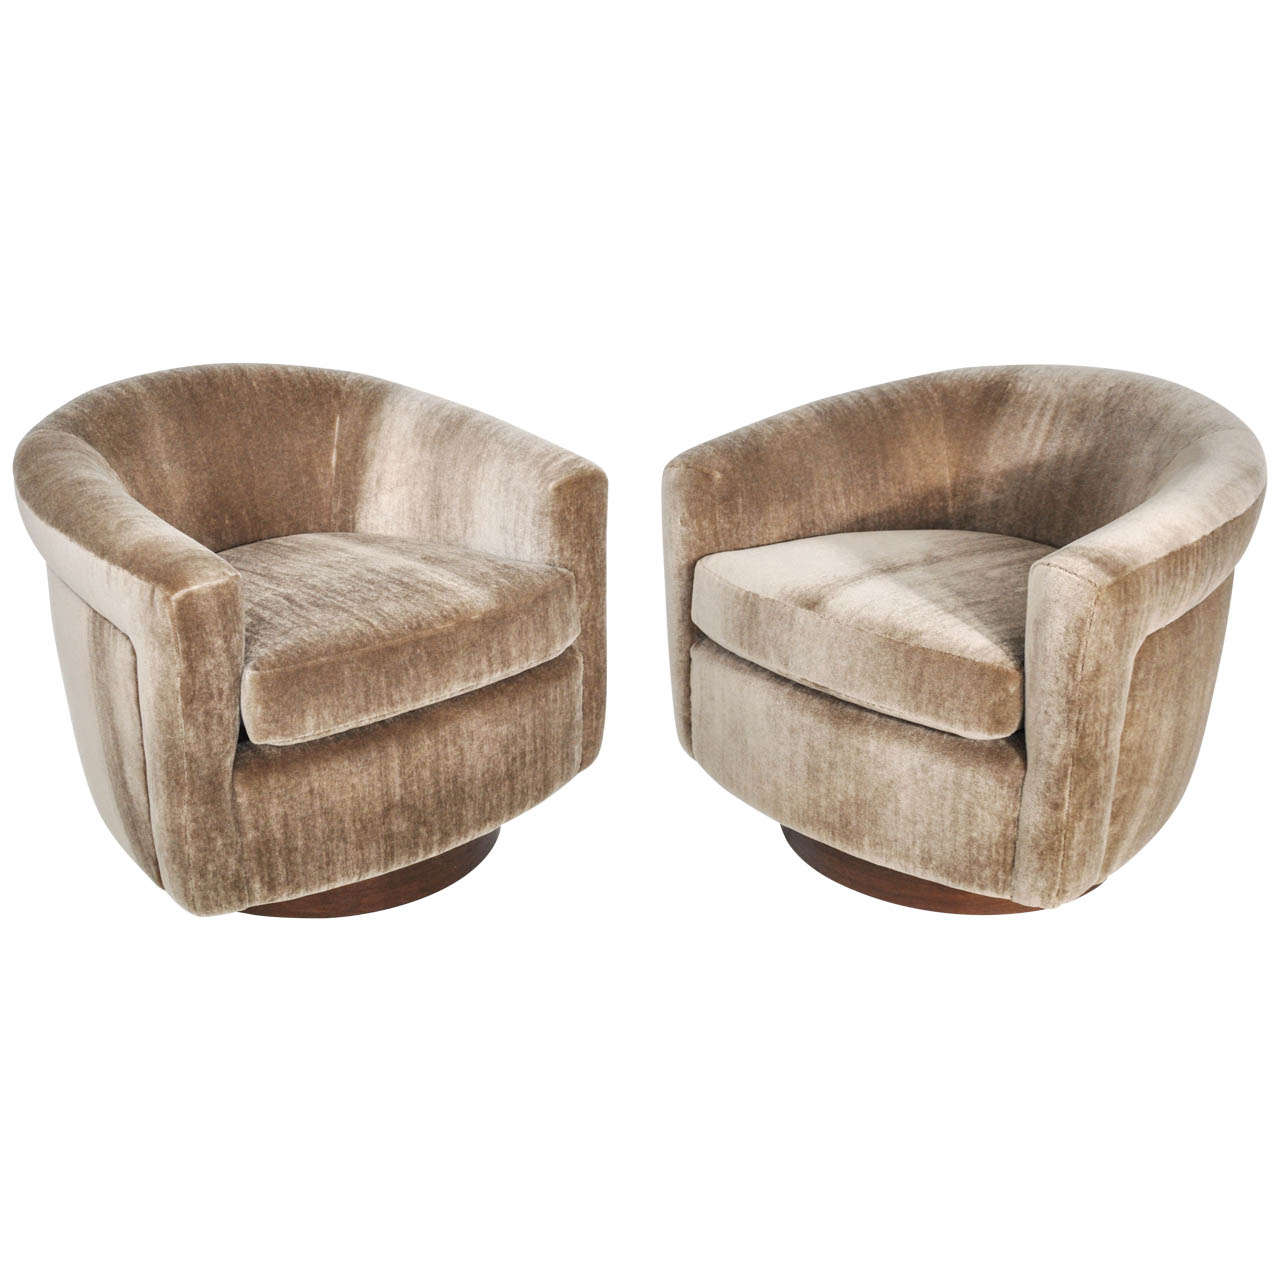 swivel lounge chairs pedicure chair replacement parts milo baughman